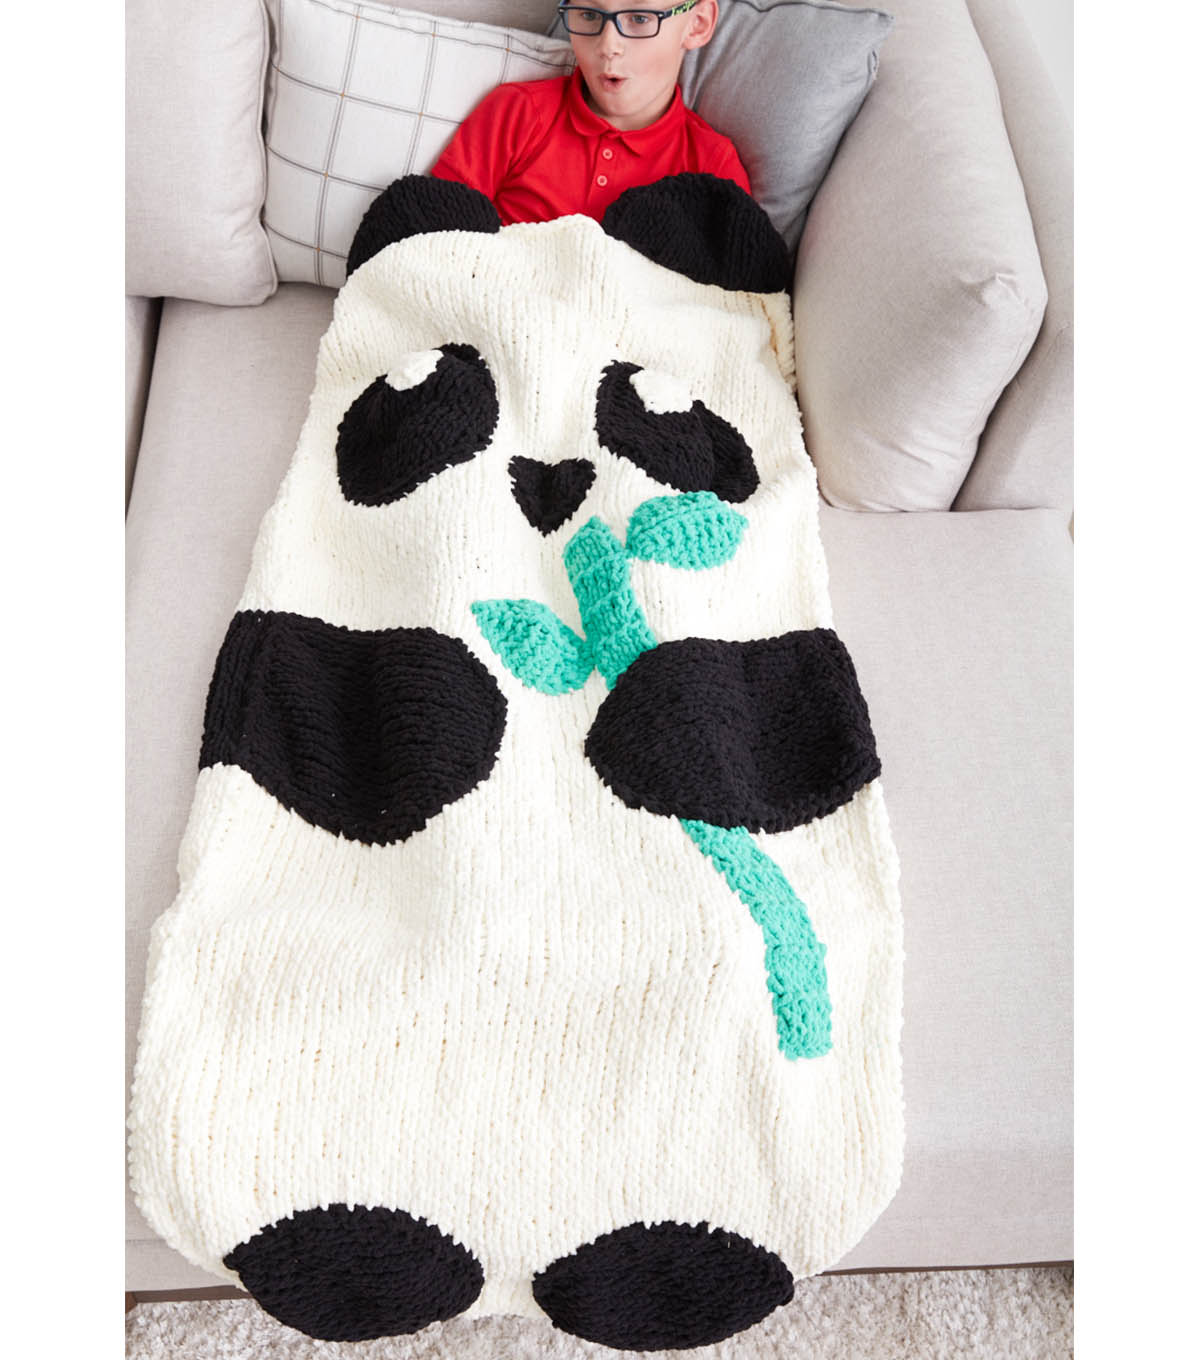 How to make a knit panda bear snuggle sack joann how to make a knit panda bear snuggle sack bankloansurffo Images